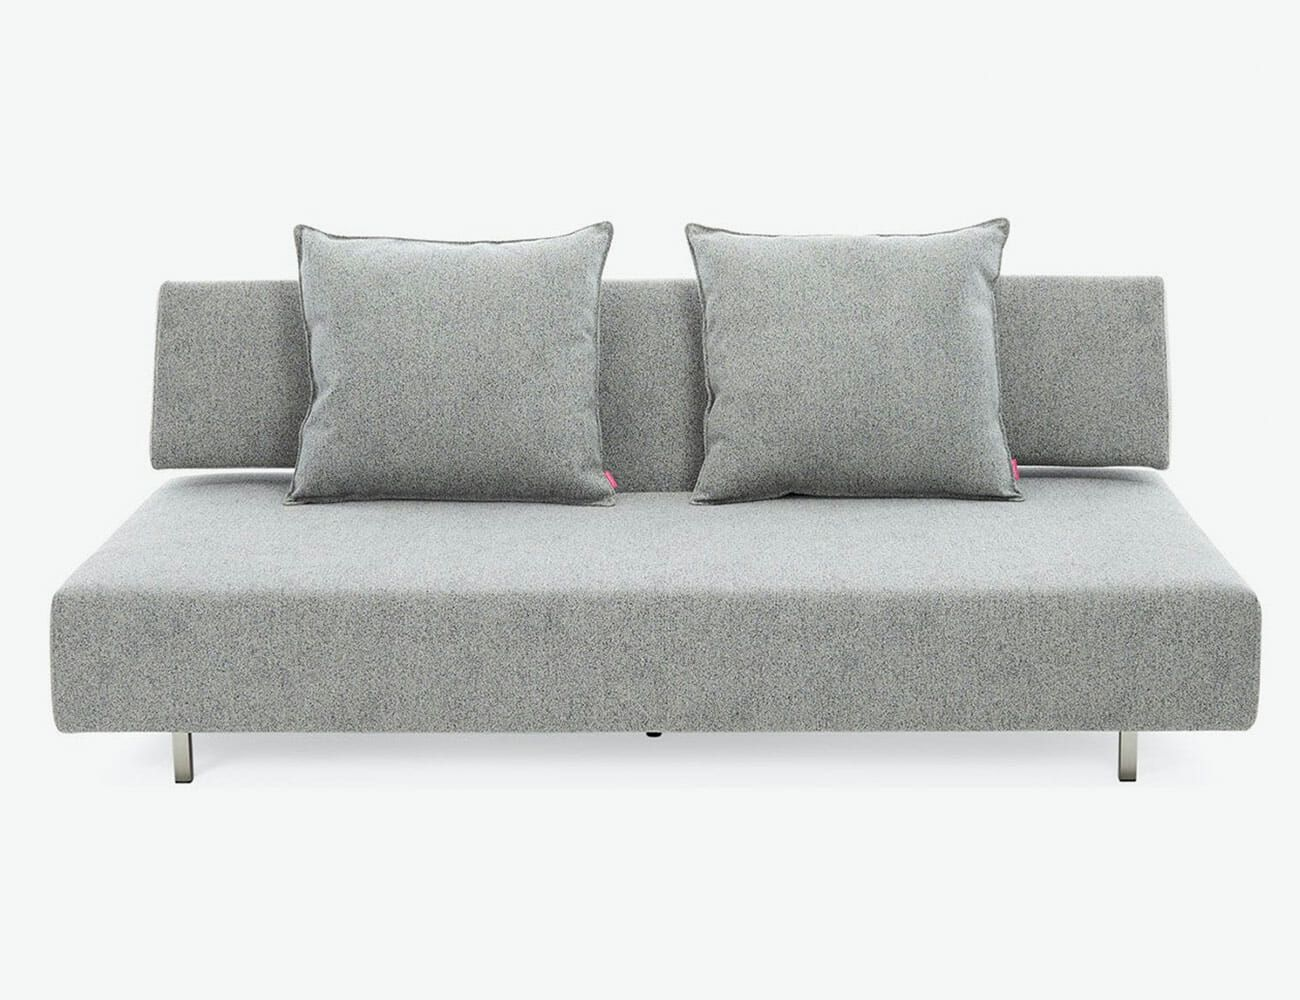 Picture of: The 28 Best Sofas And Couches You Can Buy In 2021